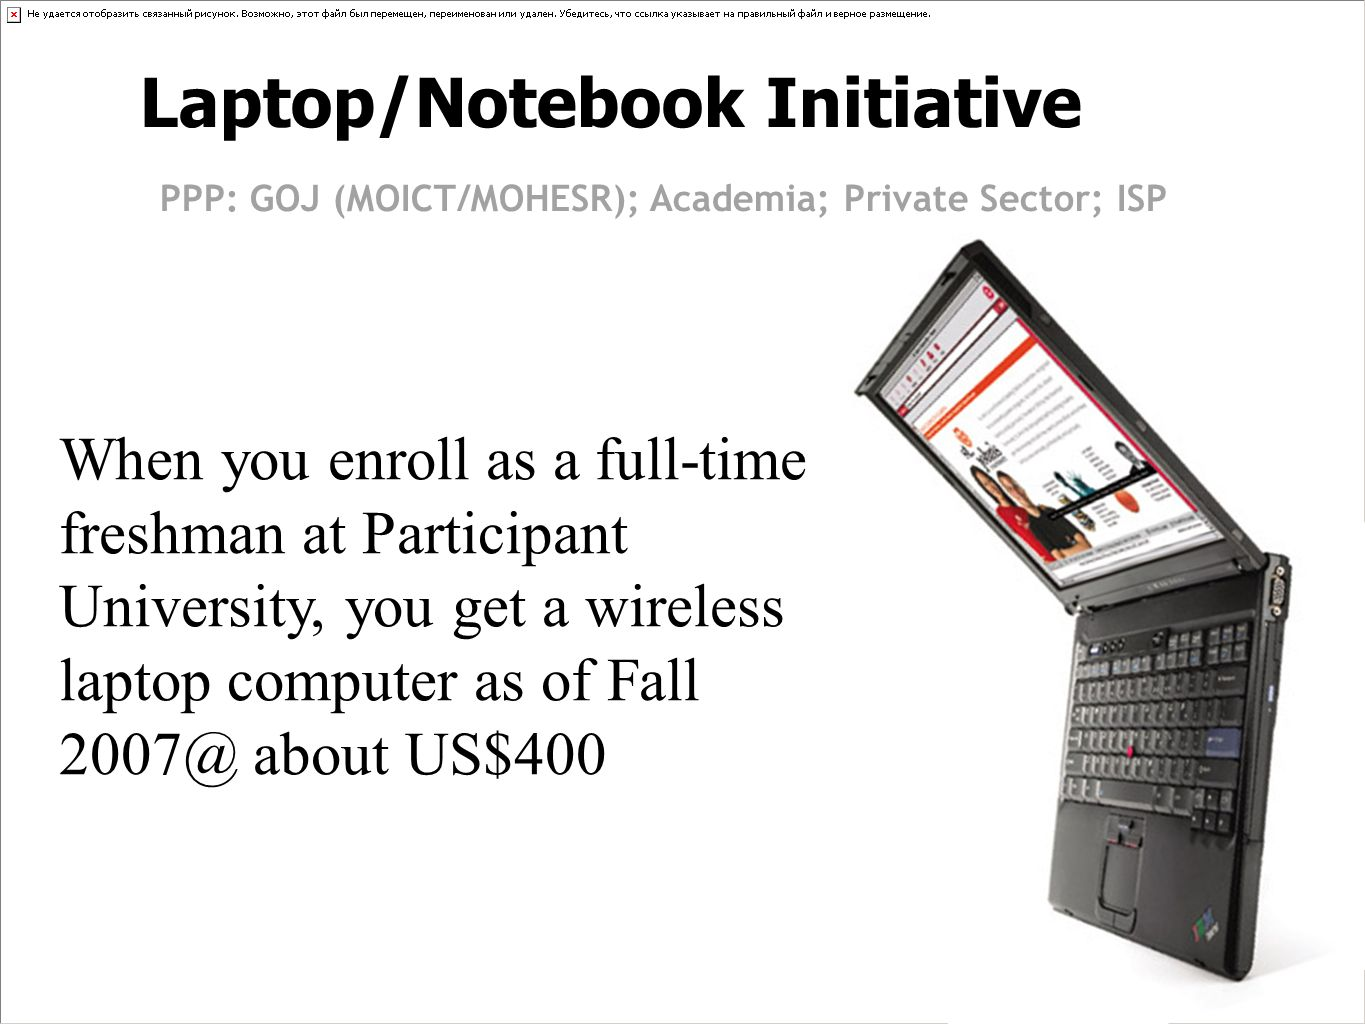 Laptop/Notebook Initiative PPP: GOJ (MOICT/MOHESR); Academia; Private Sector; ISP When you enroll as a full-time freshman at Participant University, you get a wireless laptop computer as of Fall 2007@ about US$400